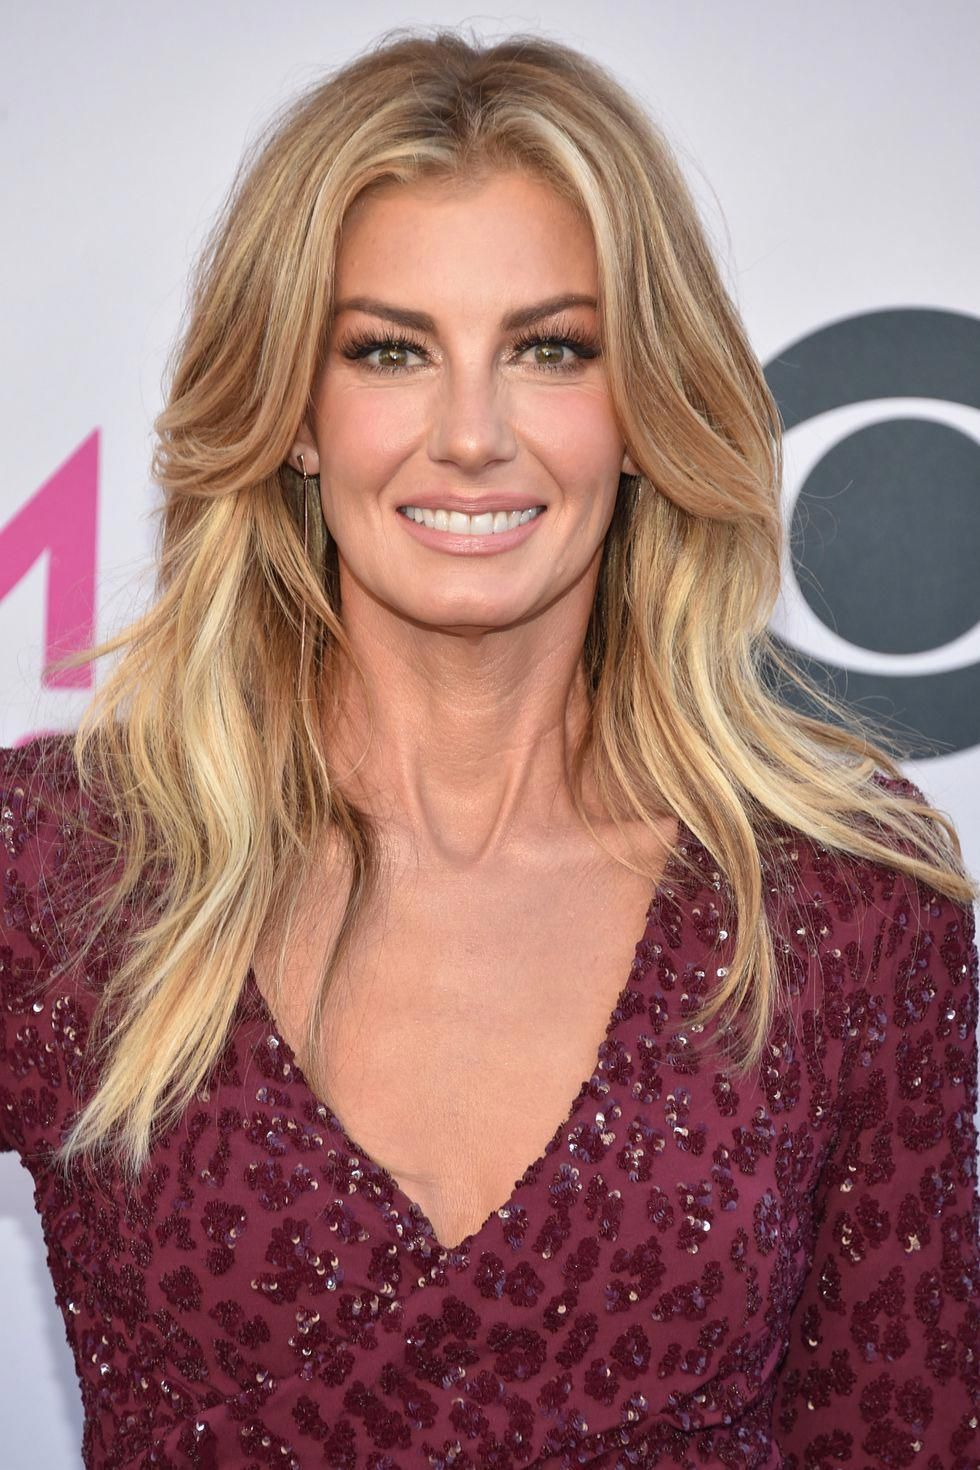 50 best hairstyles for women over 50 - celebrity haircuts